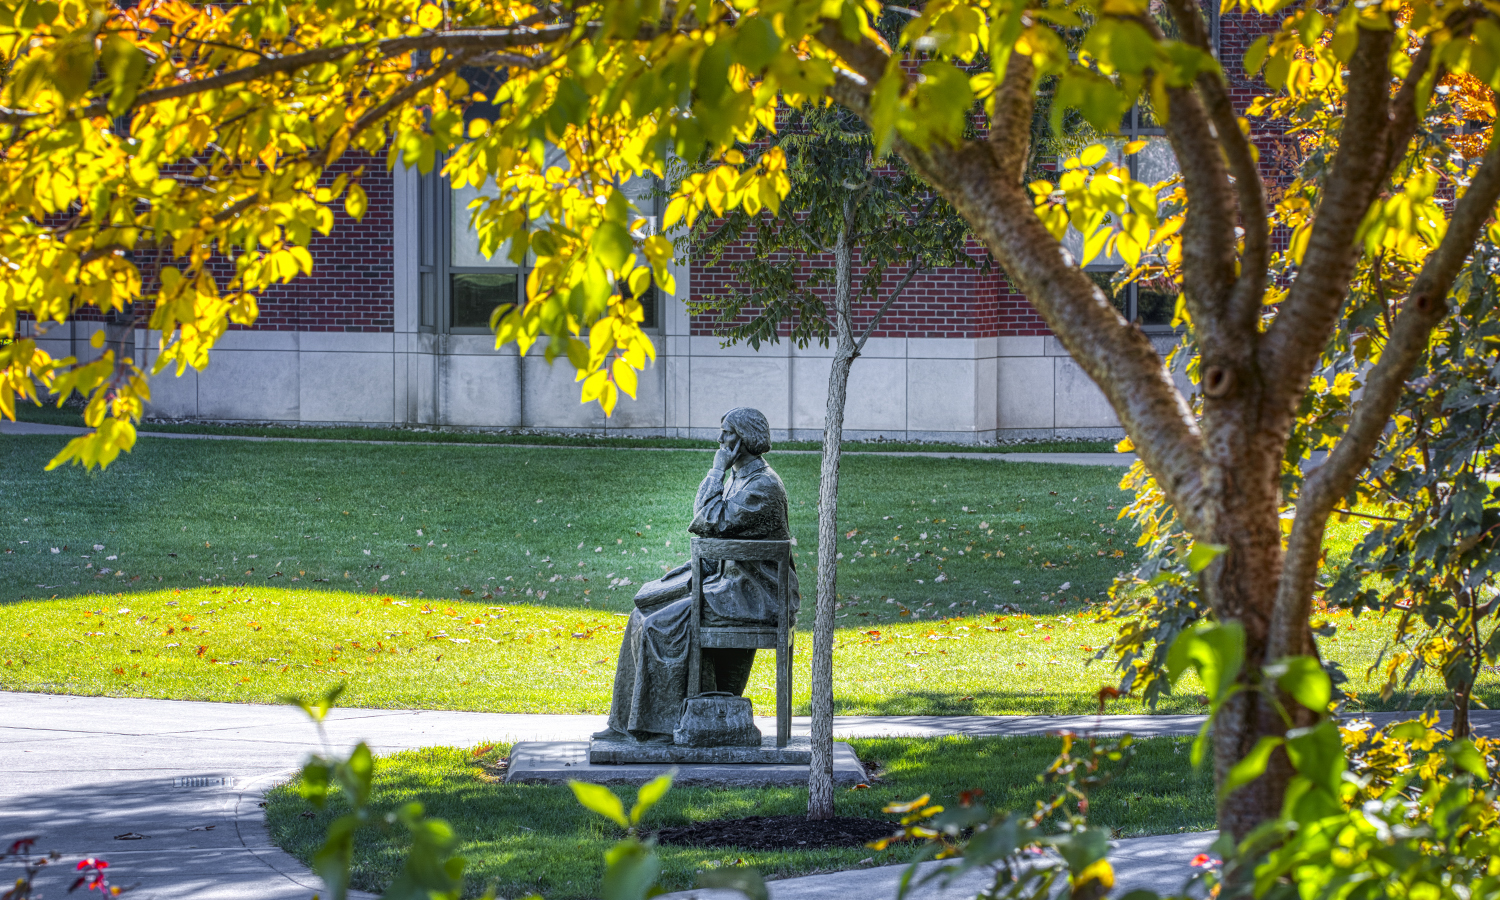 The statue of Dr. Elizabeth Blackwell, created by Professor of Art and Architecture A.E. Ted Aub in 1994, watches fall arrive on the Quad. In 1849, Blackwell graduated from the medical school of Geneva College (Hobart's precursor) as the first woman in the country to receive a medical degree. (Geneva College was renamed Hobart Free College in 1852 and Hobart College in 1860.)